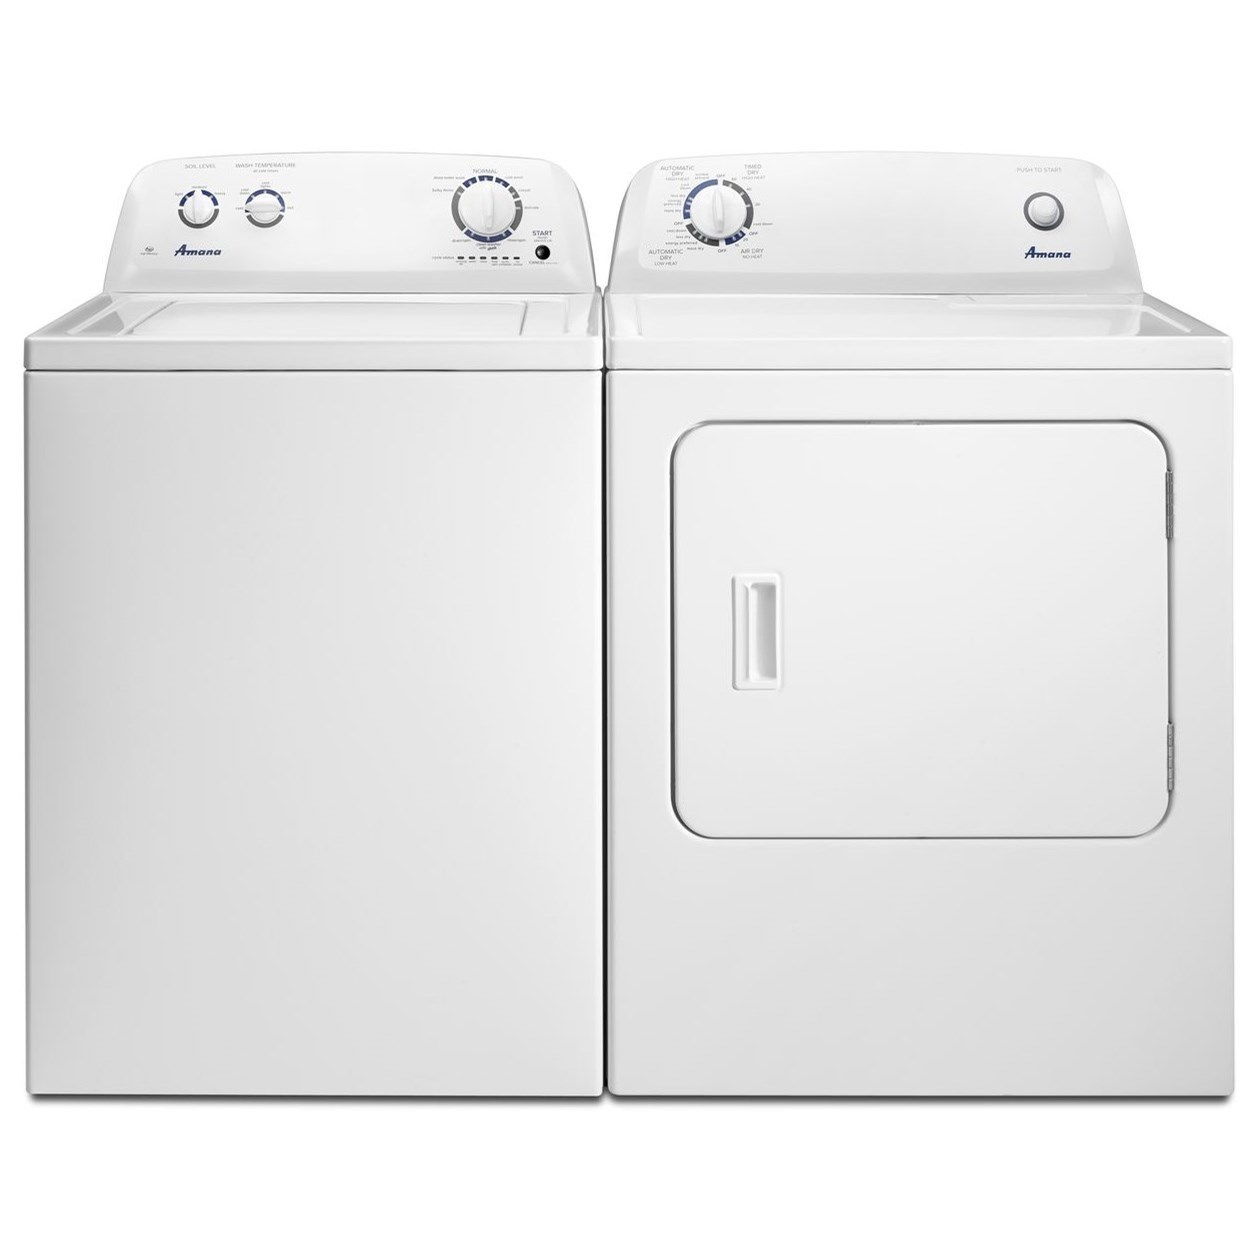 Amana 3.5 Cu. Ft. Top-Load Washer With Porcelain Tub and 6.5 Cu. Ft. Top-Load Dryer With ...